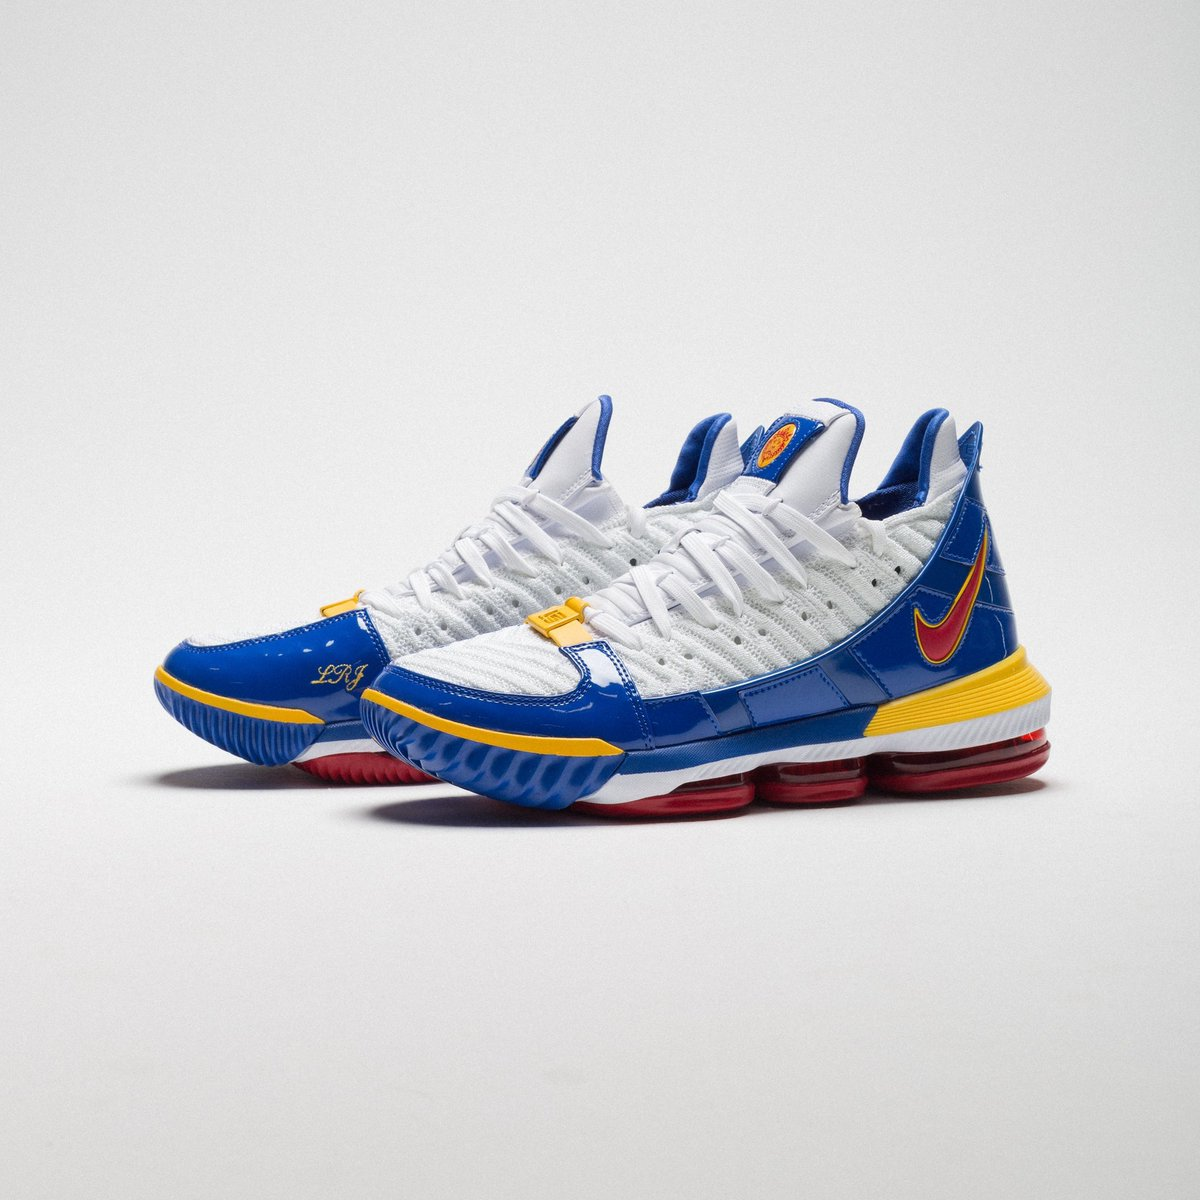 ab09ddfa3e5 superbron nike lebron 16s hitting select retailers like undefeatedinc today  lebronwatch